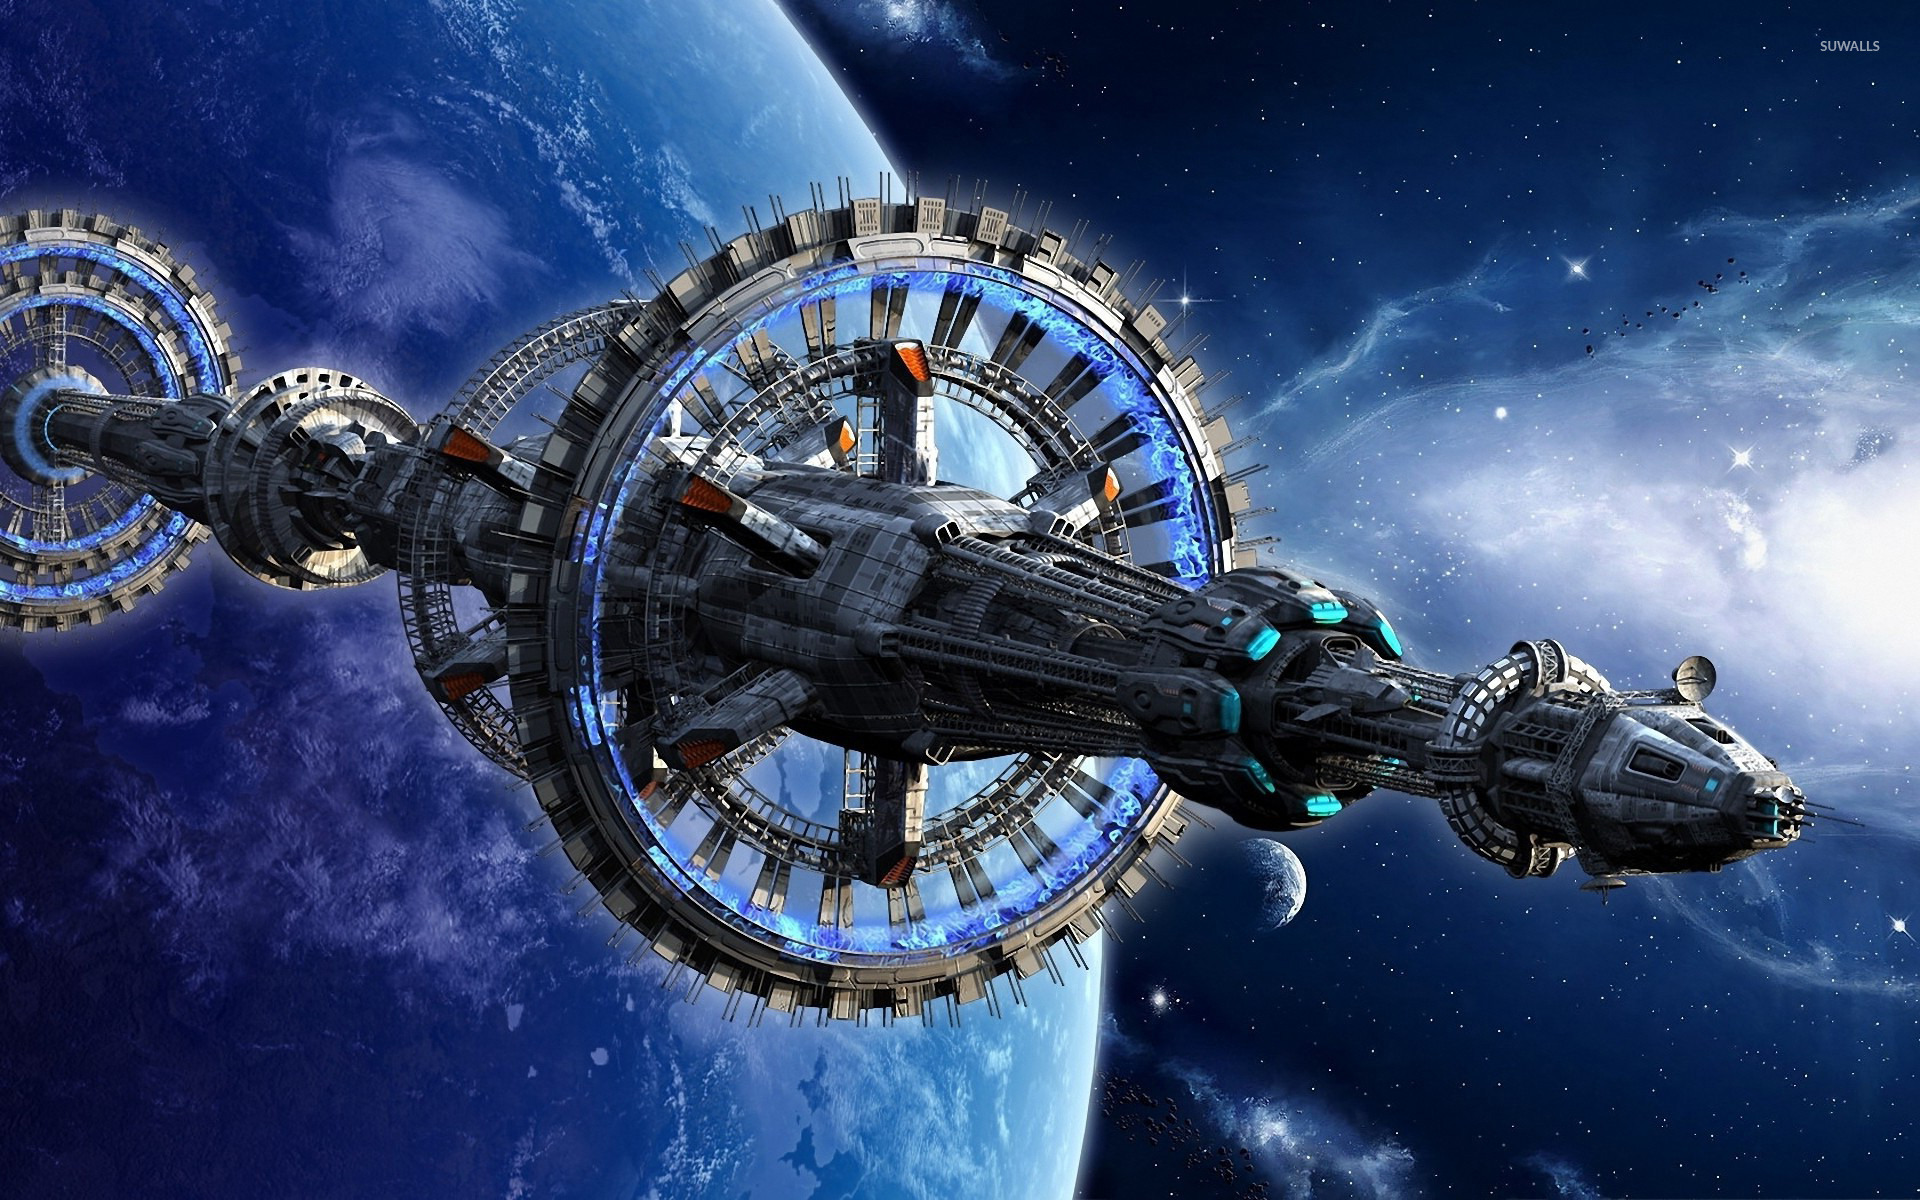 space station near blue planet wallpaper - fantasy wallpapers - #38563